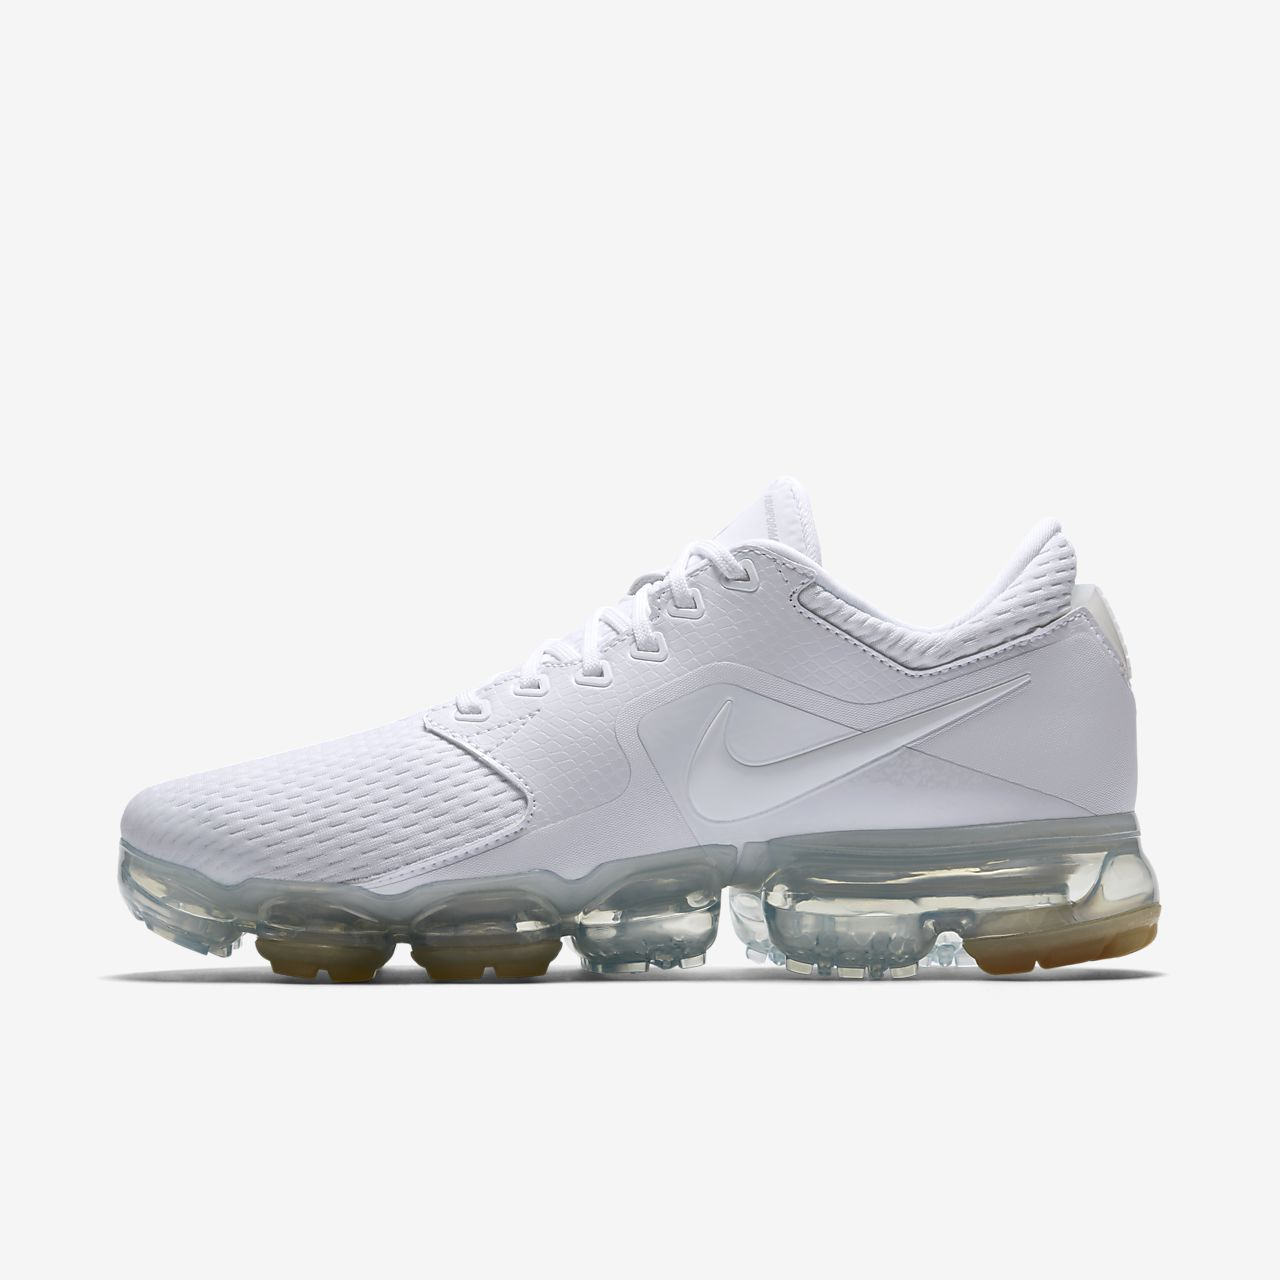 Famous Wmns Nike Air Vapormax White Metallic Silver Awesome Women Running Shoes AH9045-101 Best